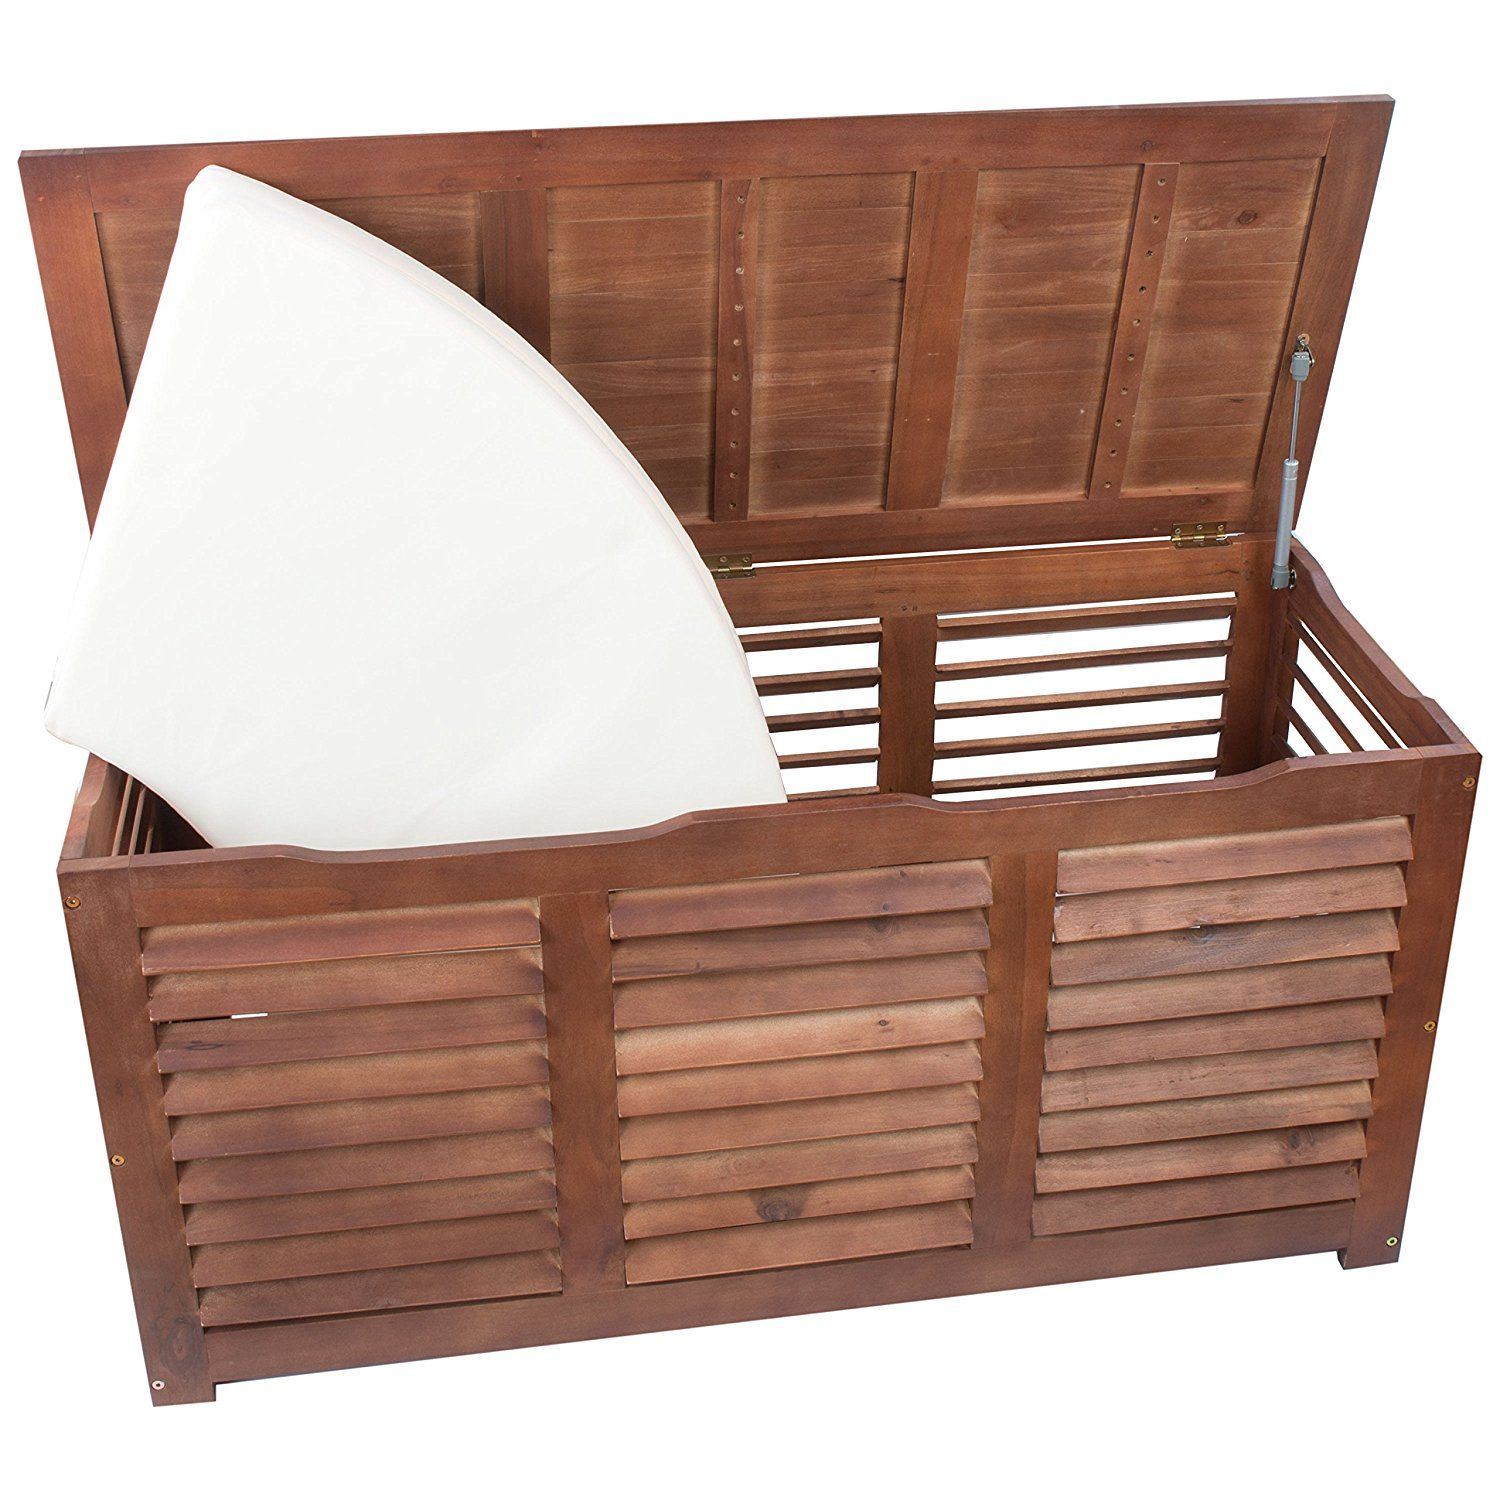 Outdoor Kissenbox Amazon De Garten Kissenbox Holz 1tlg Kissenbox Holzoptik